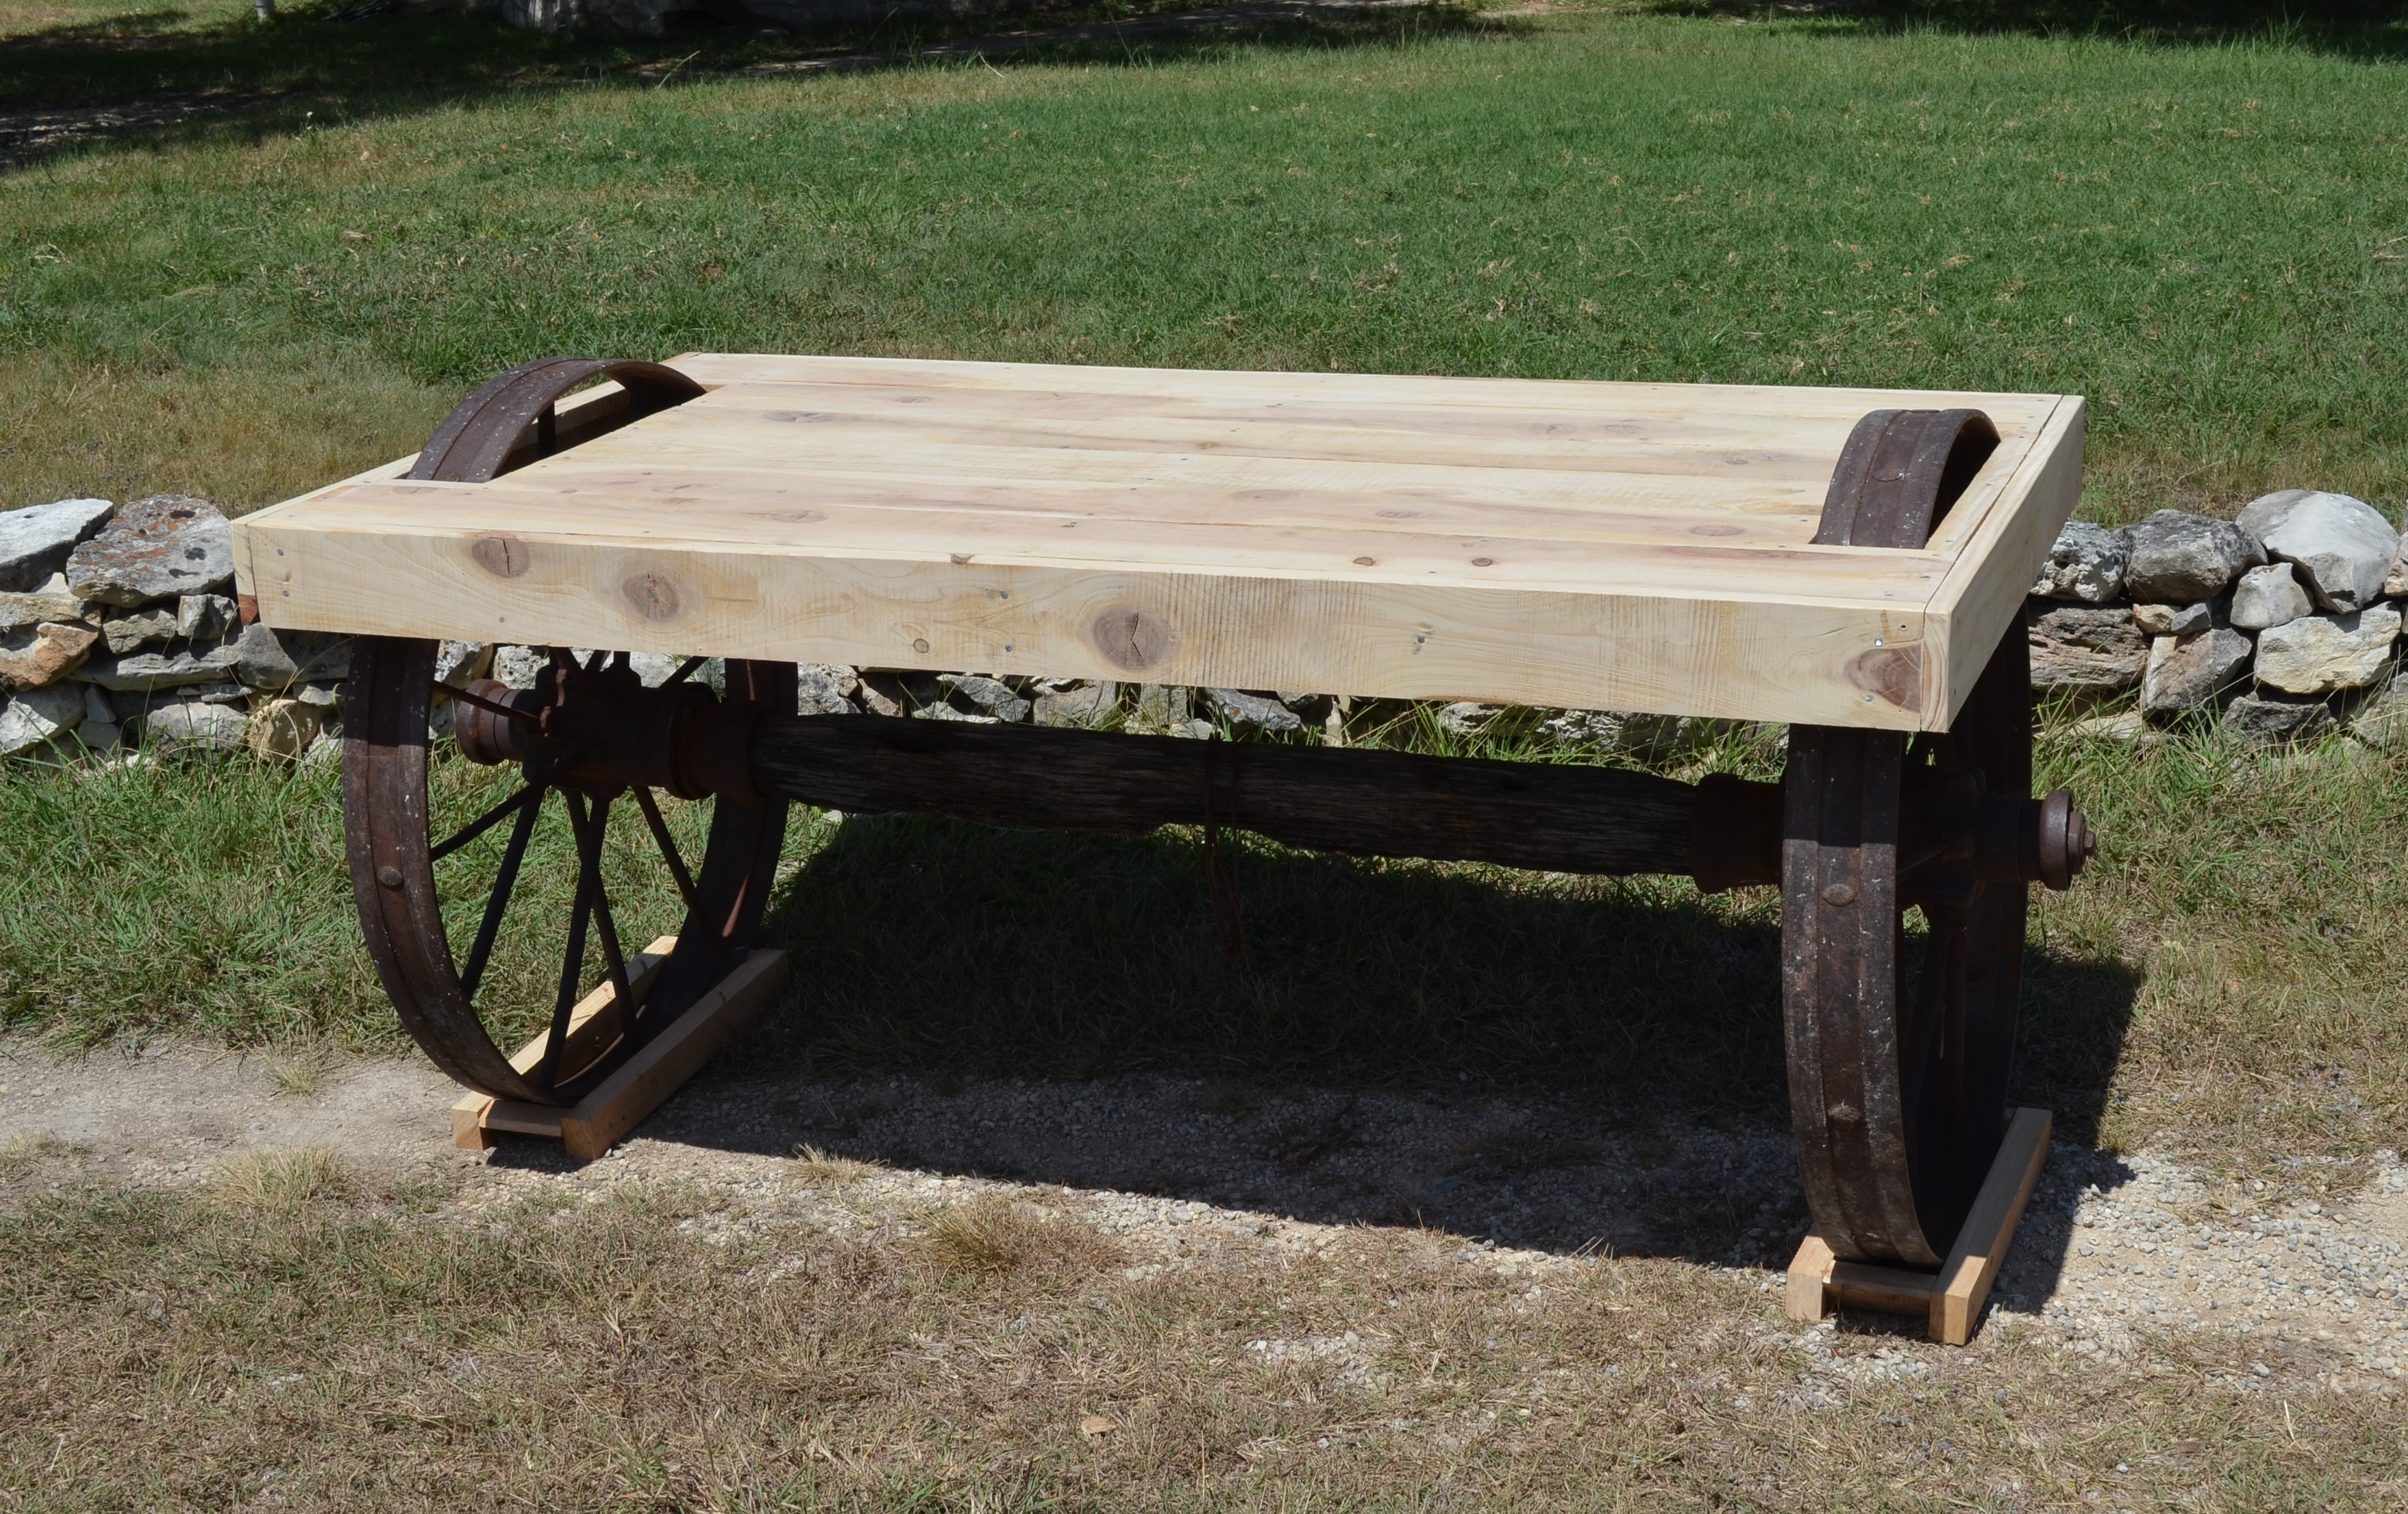 Rustic Wagon Wheel Table Sycamore Creek Creations - Ranch style table